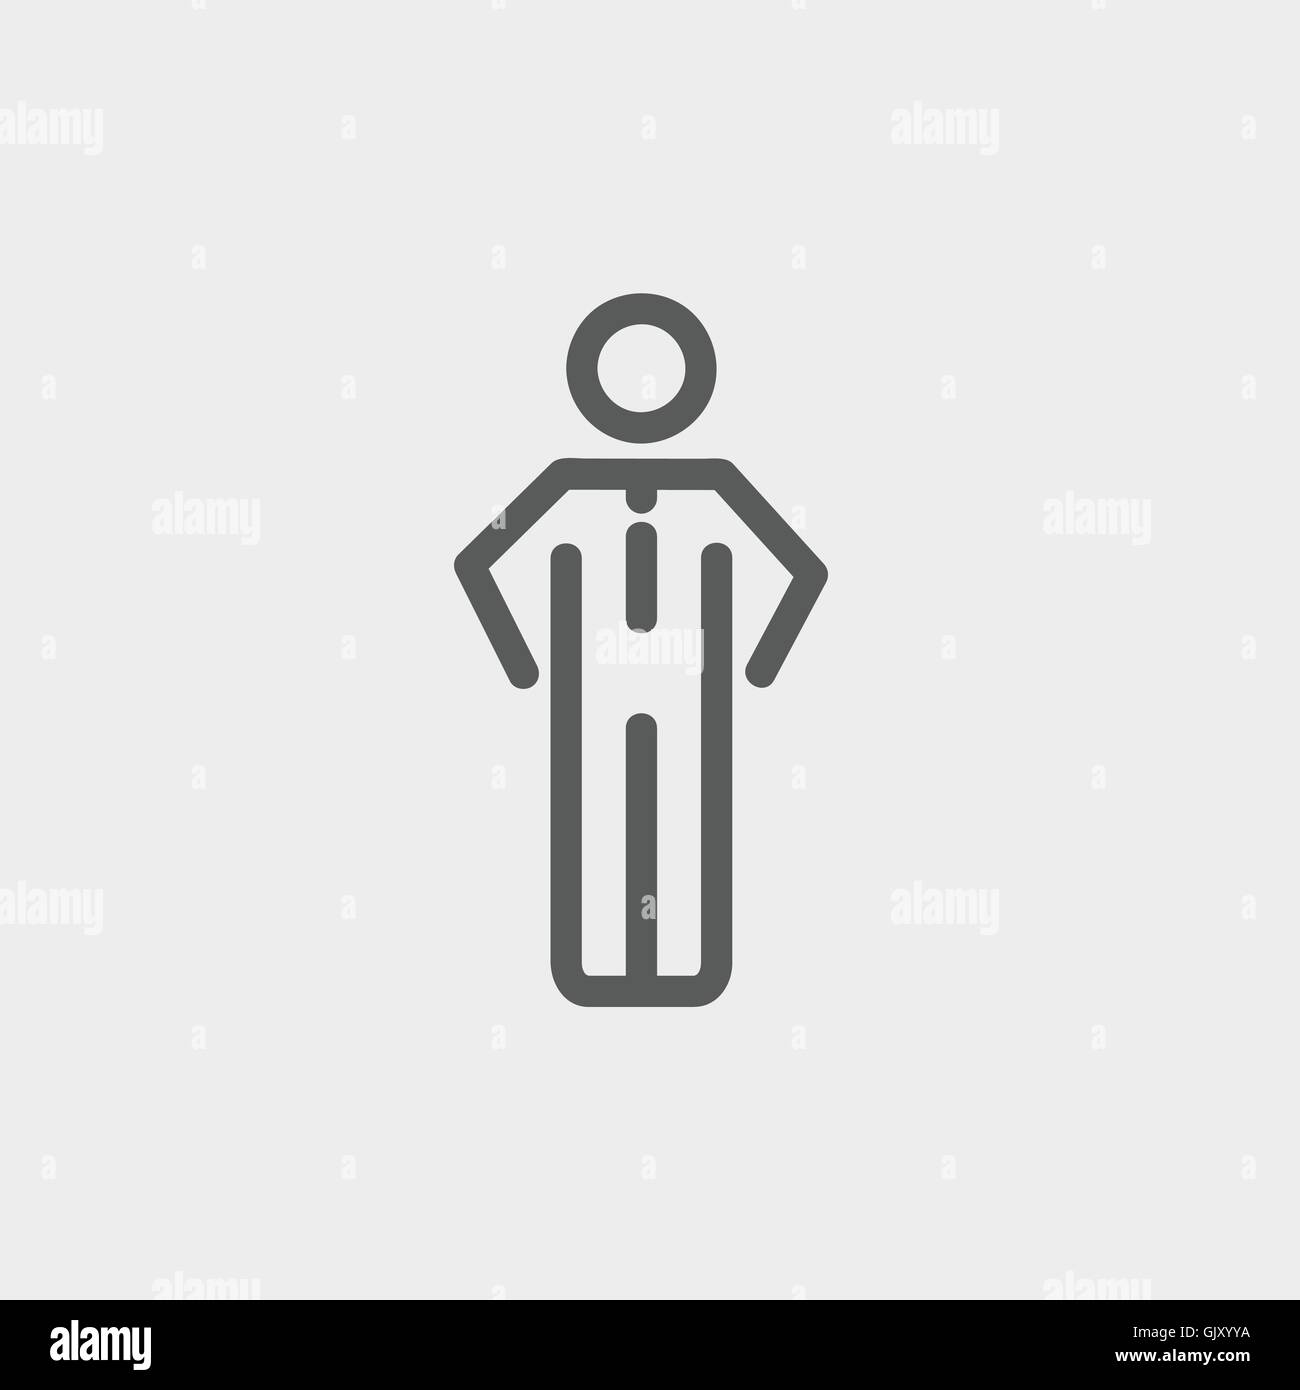 Man standing thin line icon - Stock Vector